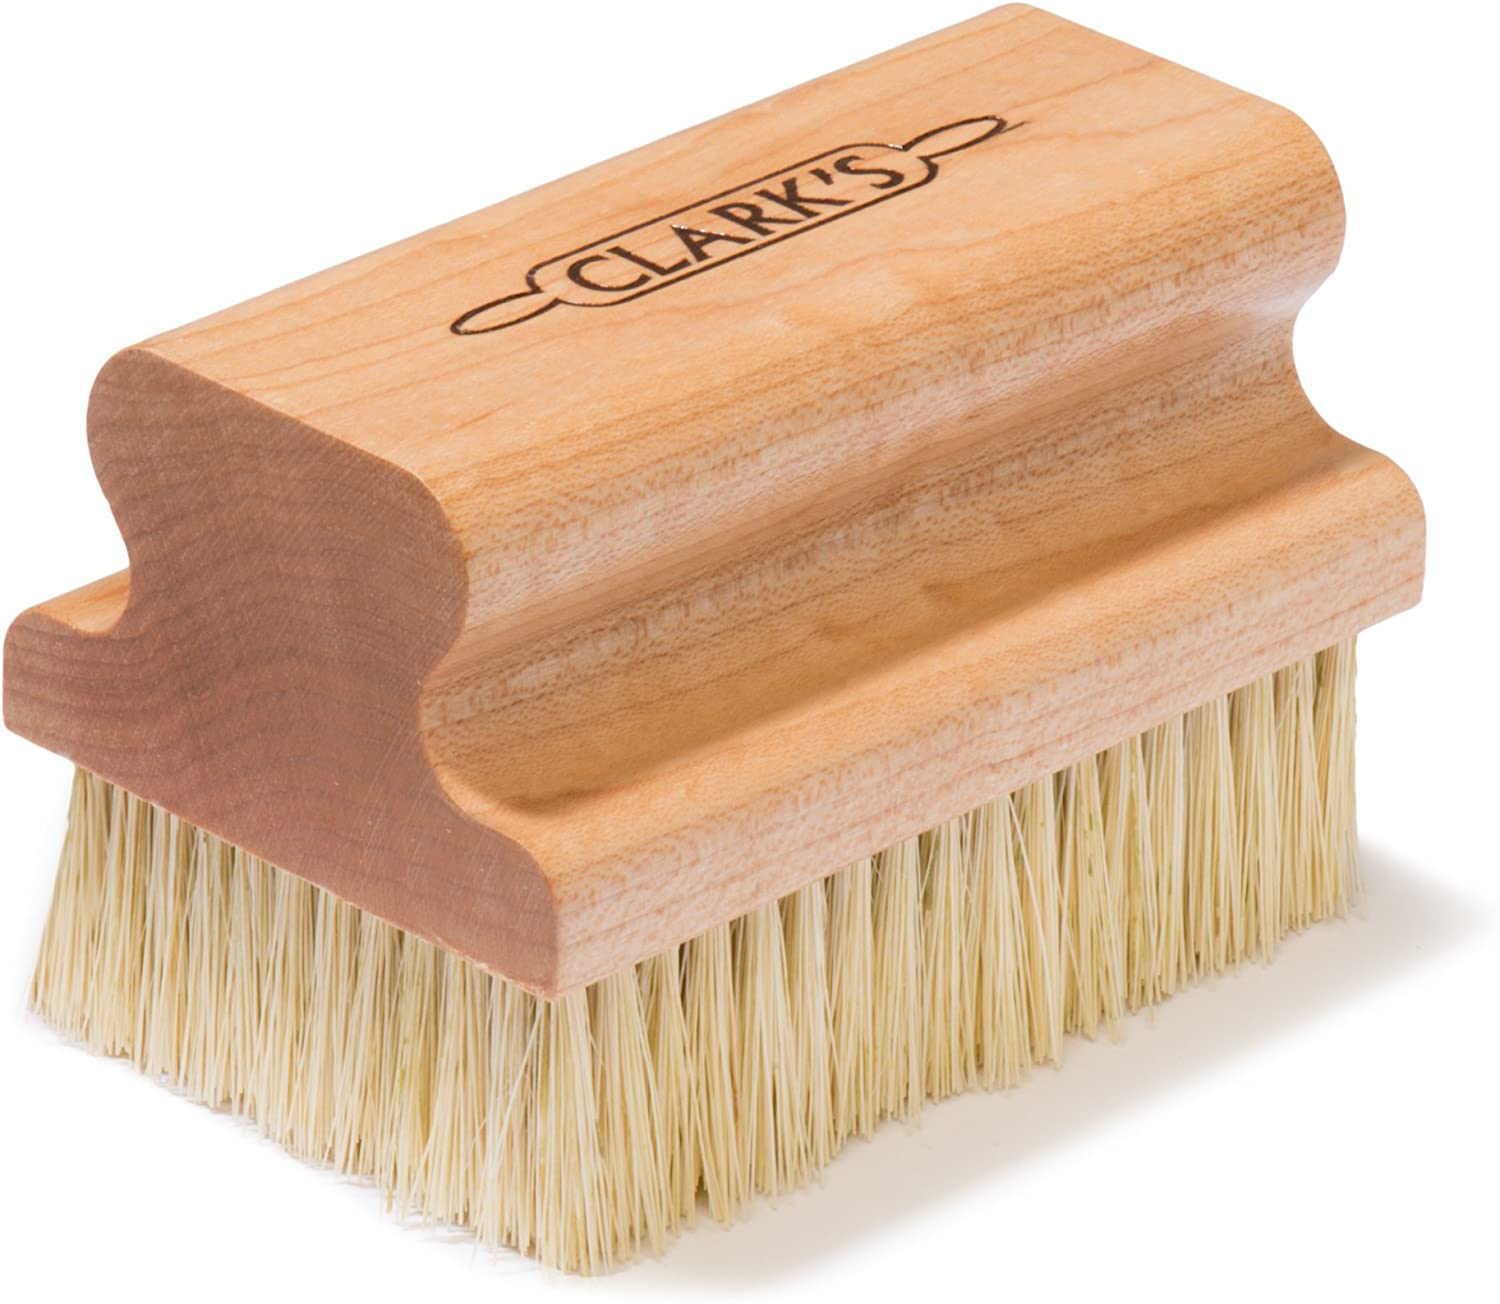 CLARK'S Max 86% OFF Large Scrub Brush Max 68% OFF Maple for Construction -